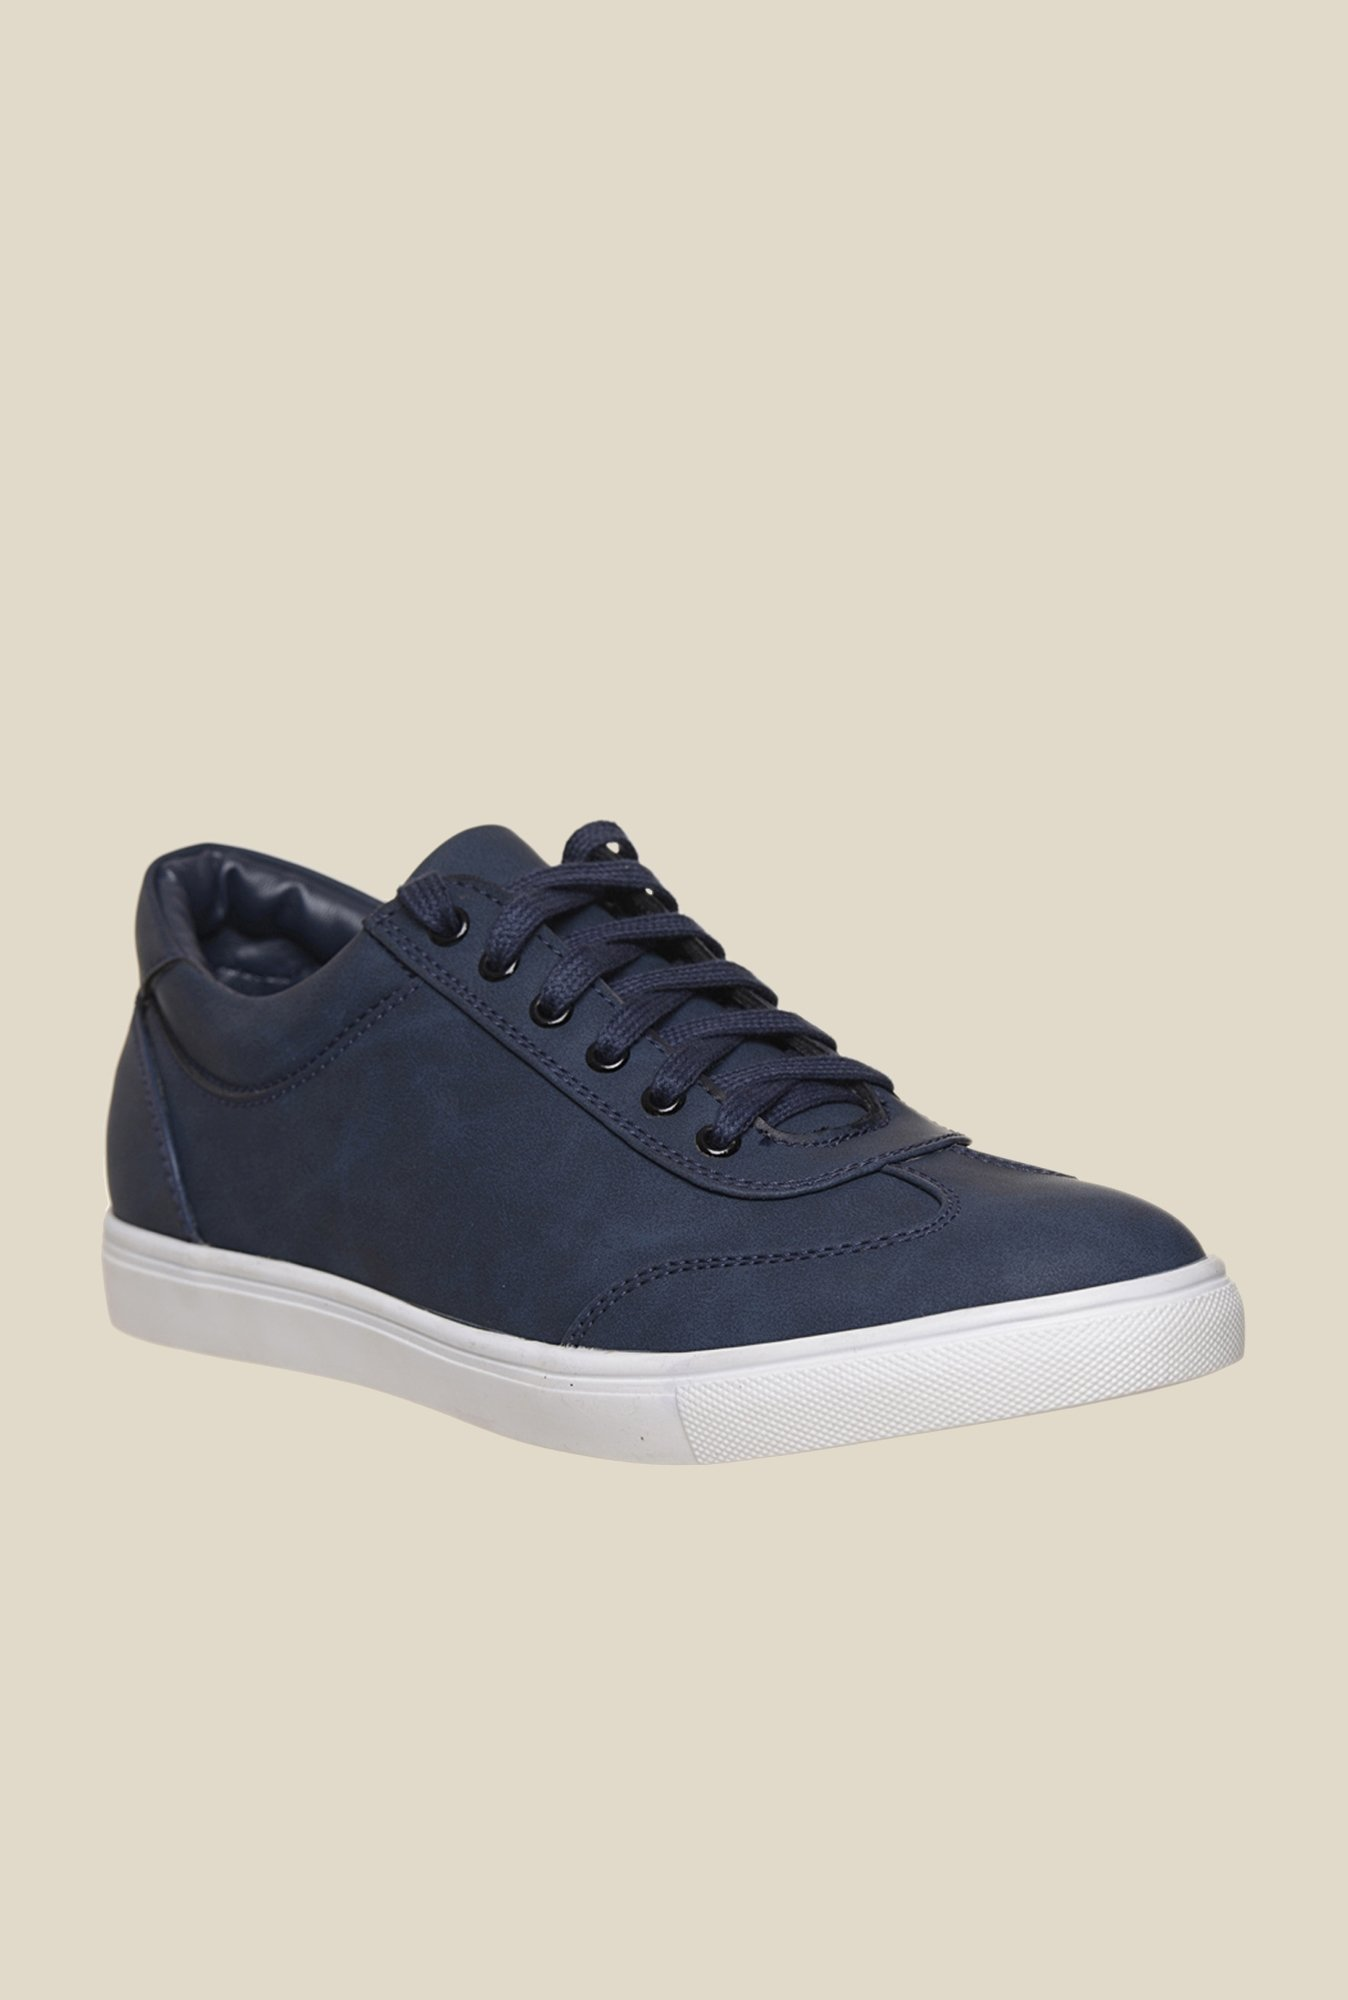 Bruno Manetti Navy & White Sneakers